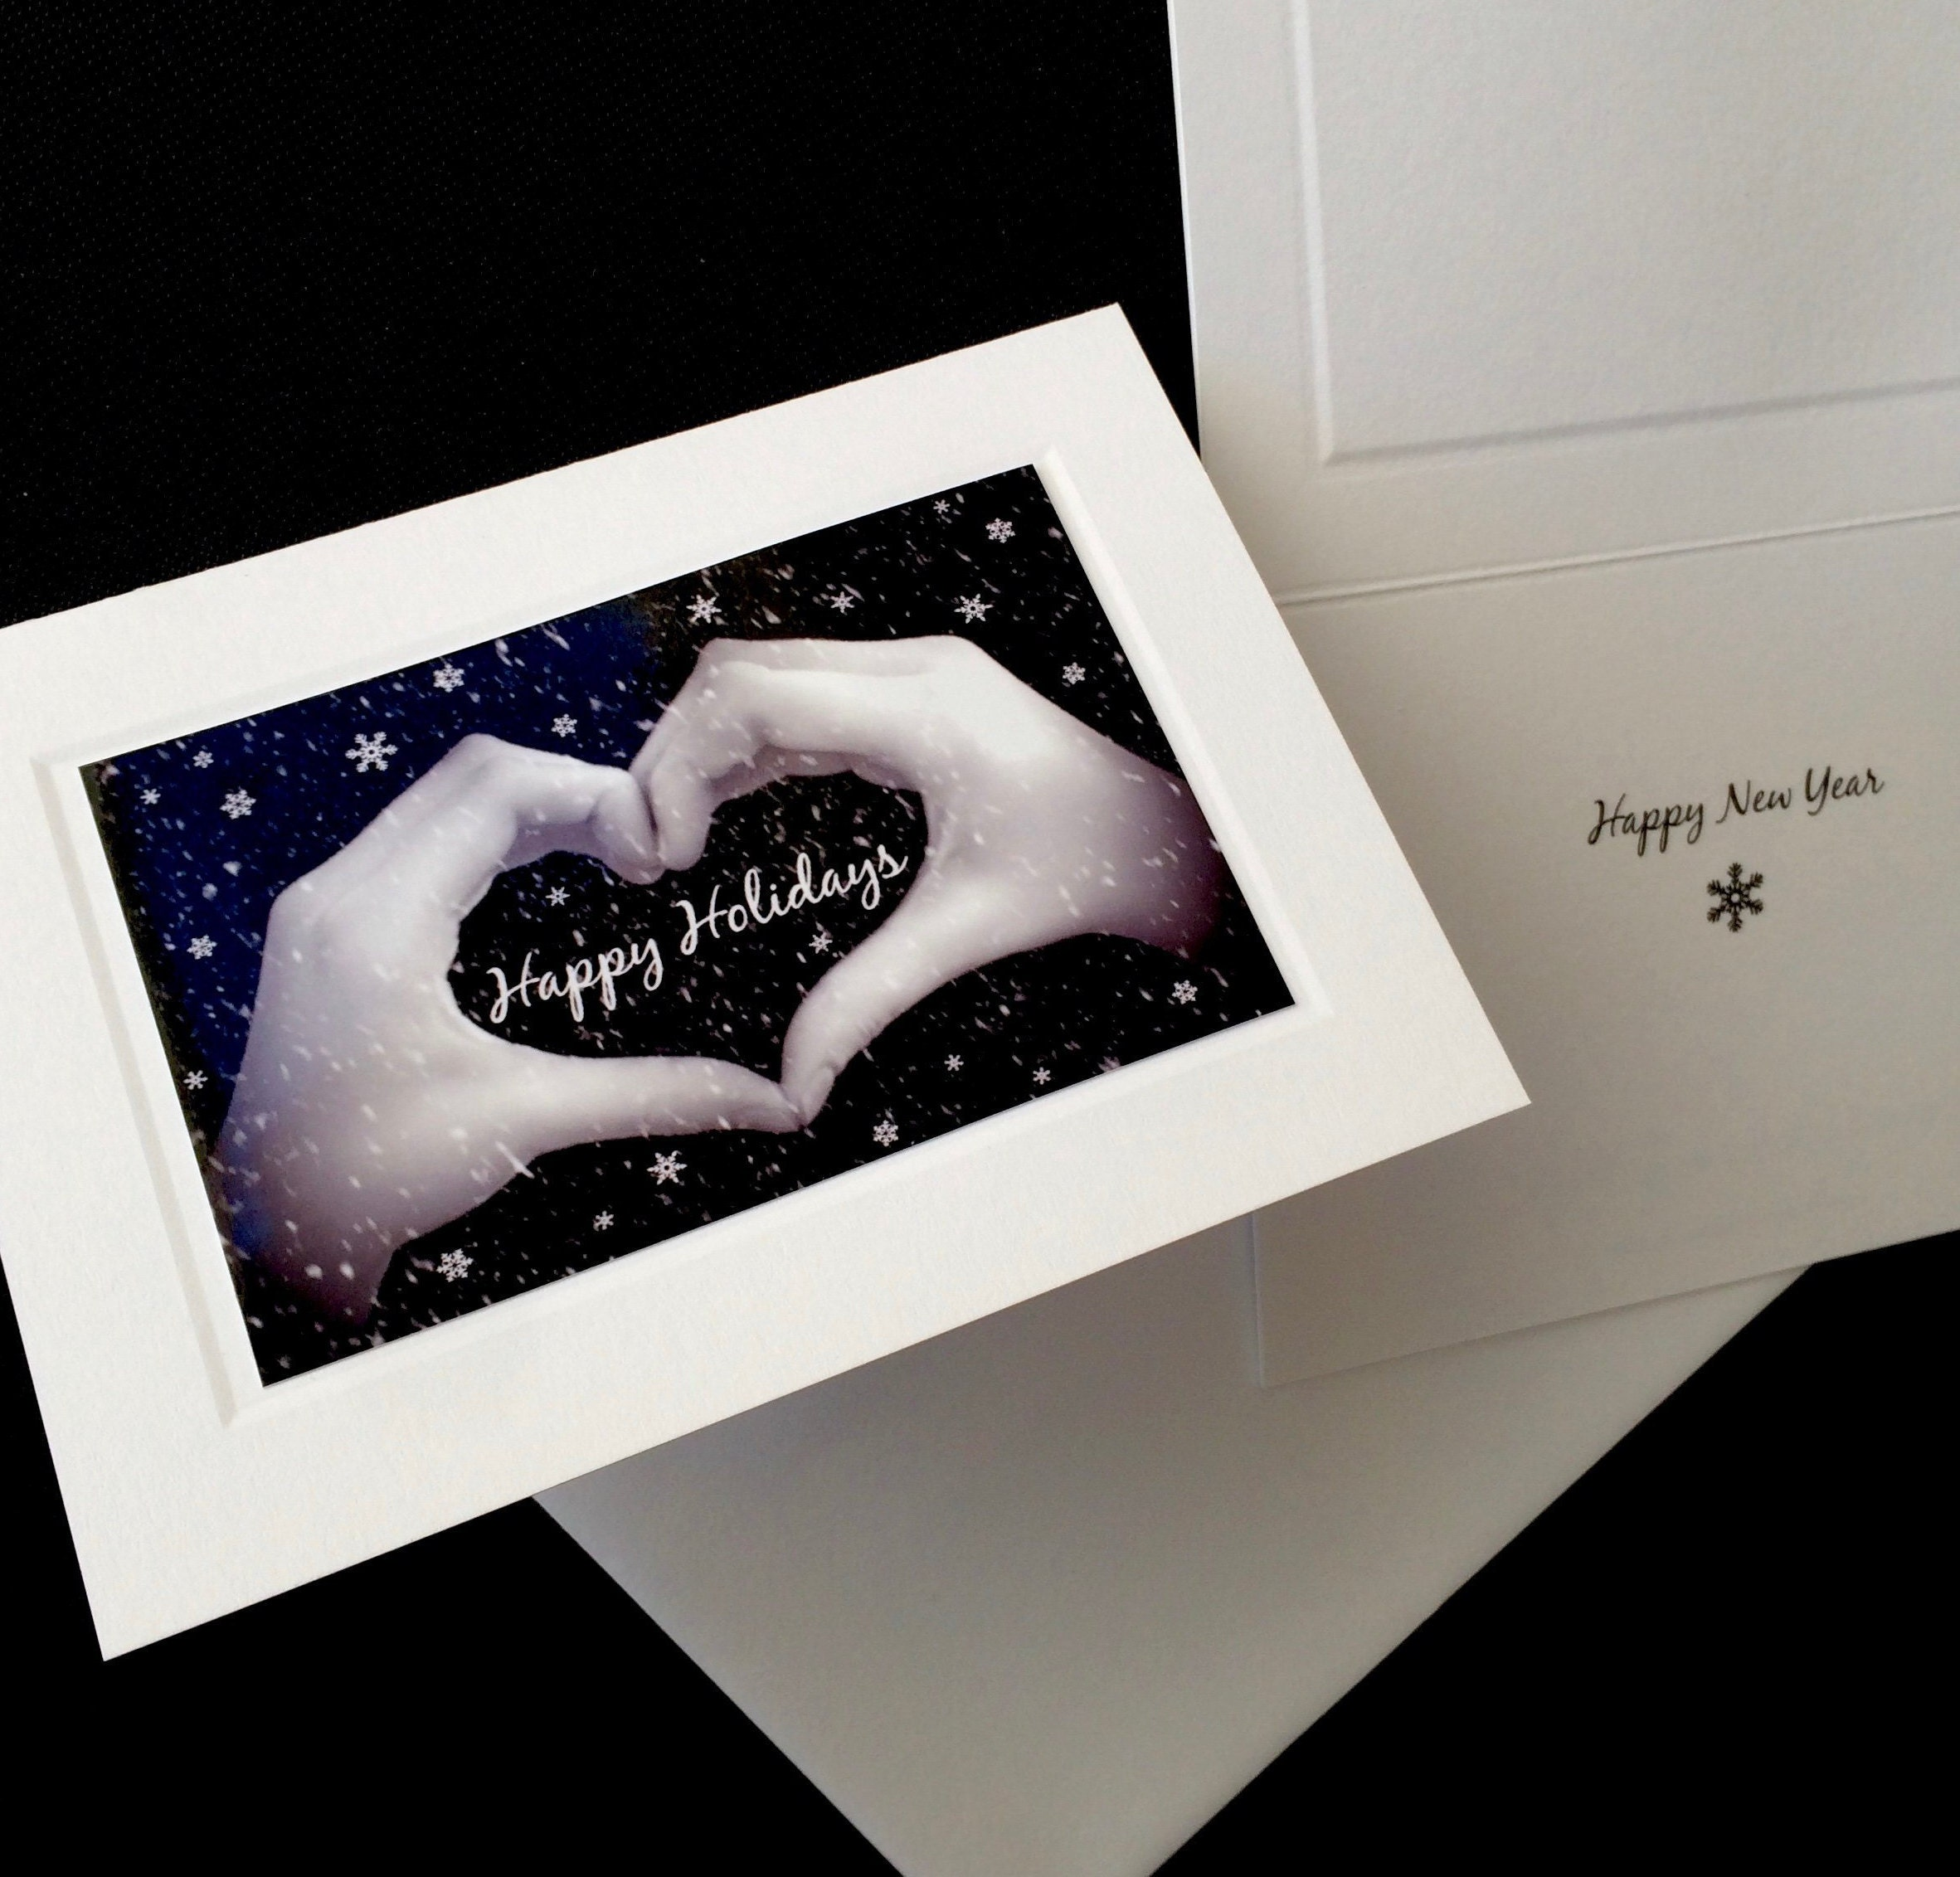 happy holidays heart hands sign language card black white photo holiday and new years card individual greeting cards and boxed sets